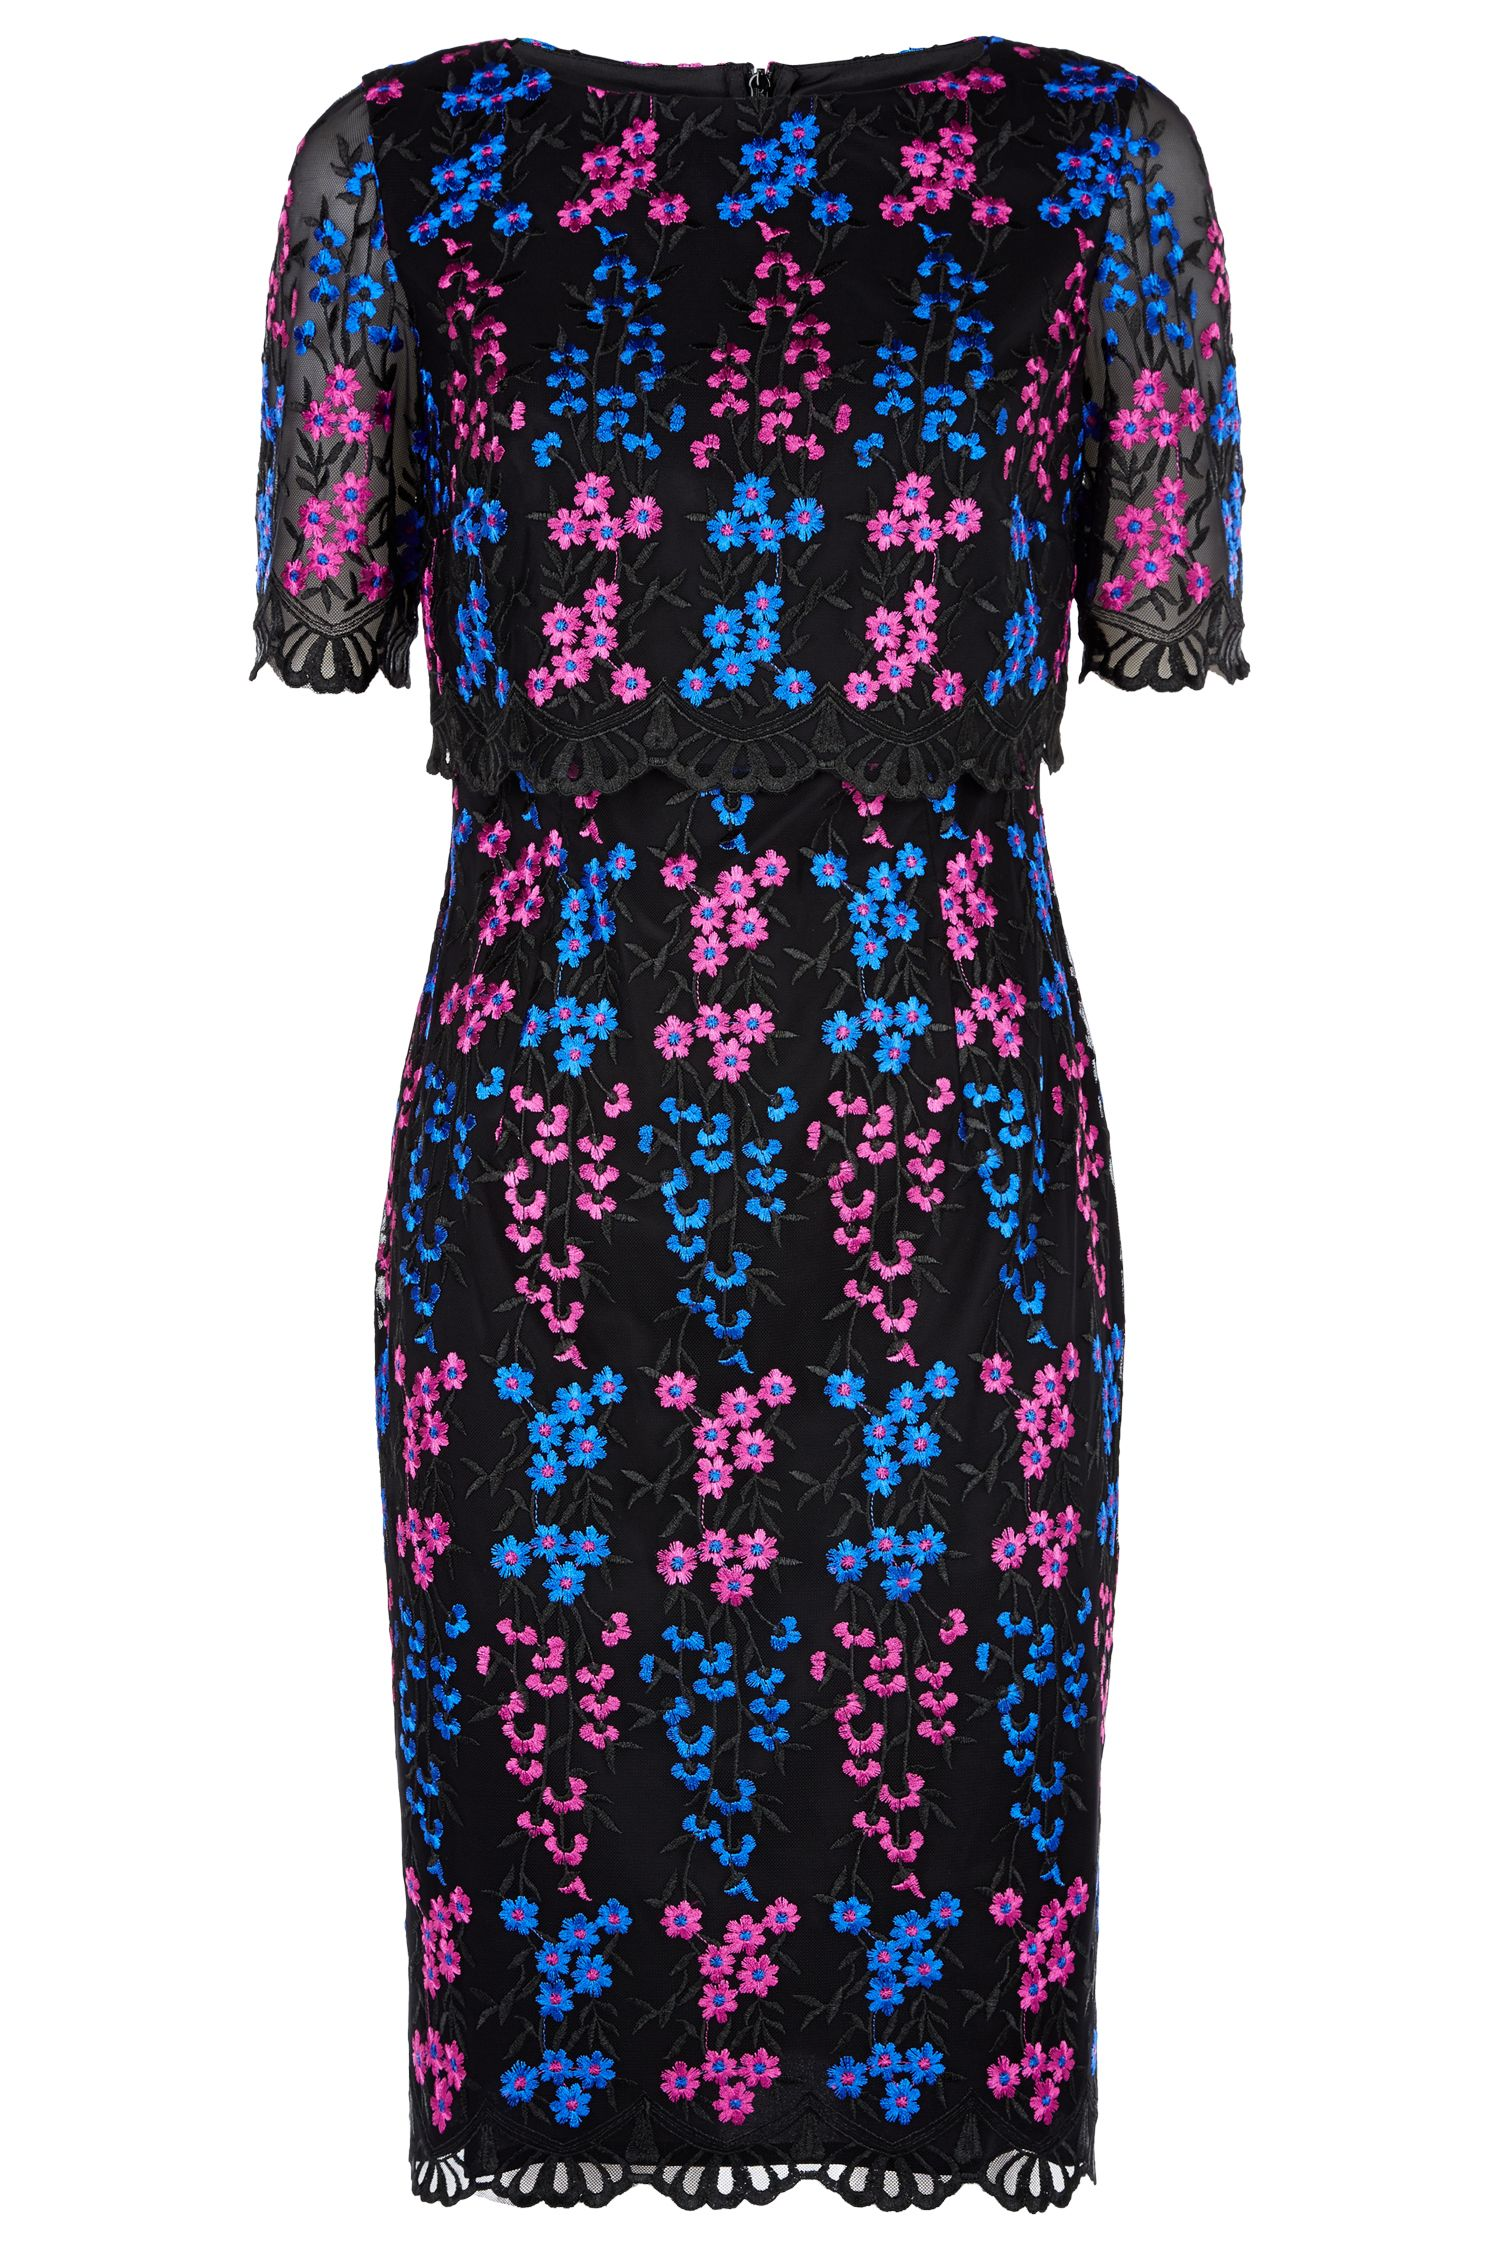 Fenn Wright Manson Miranda Dress, Multi-Coloured